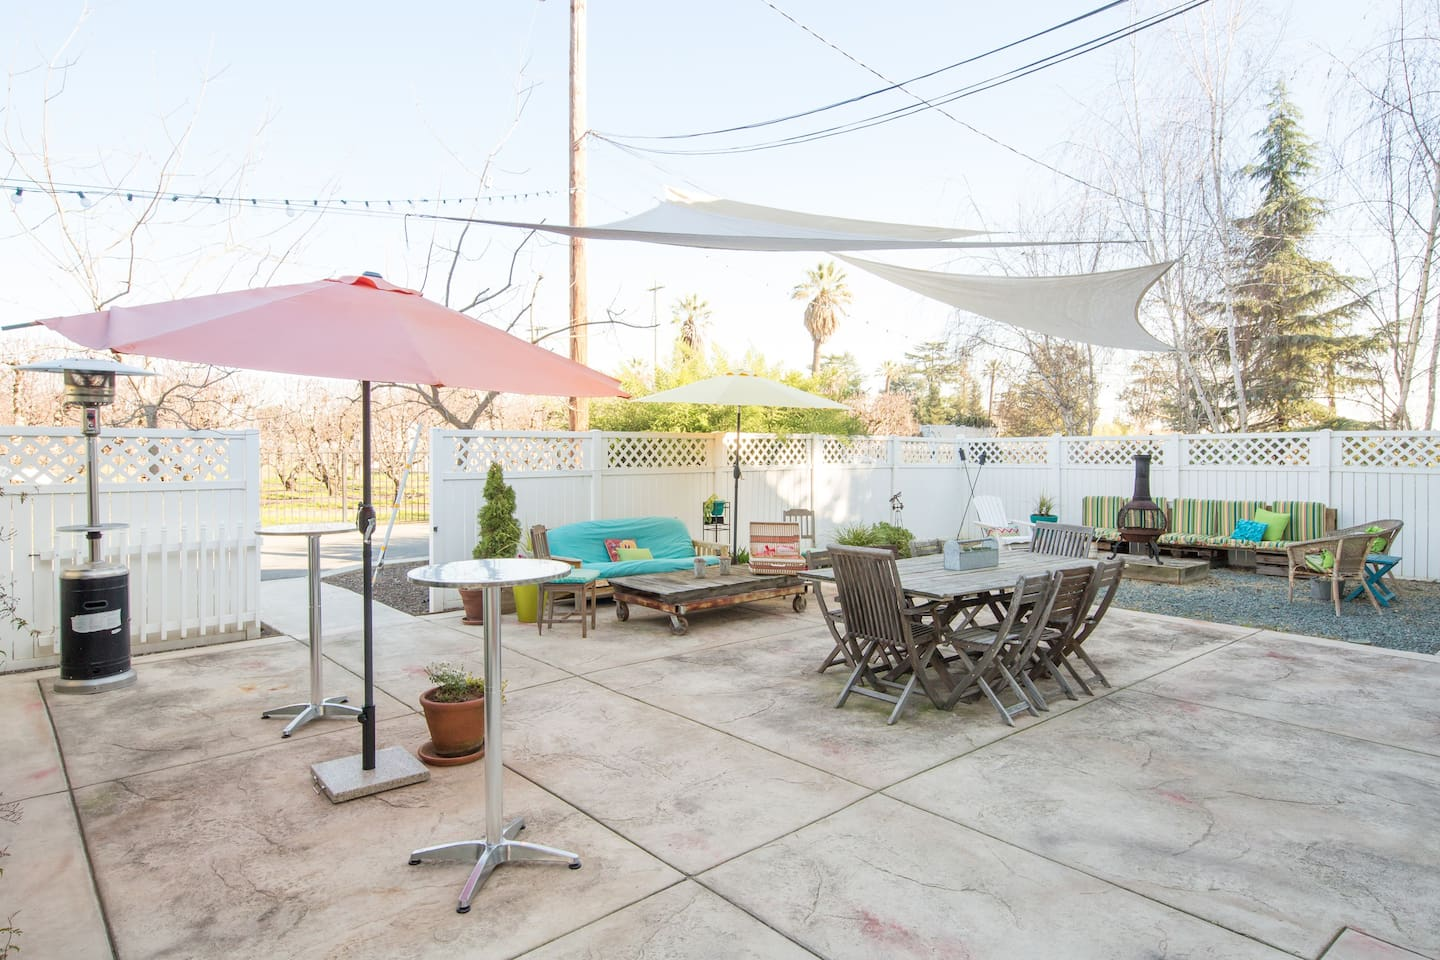 Outdoor common area with firepit, bar-b-cue, fountain, pond and lounge.